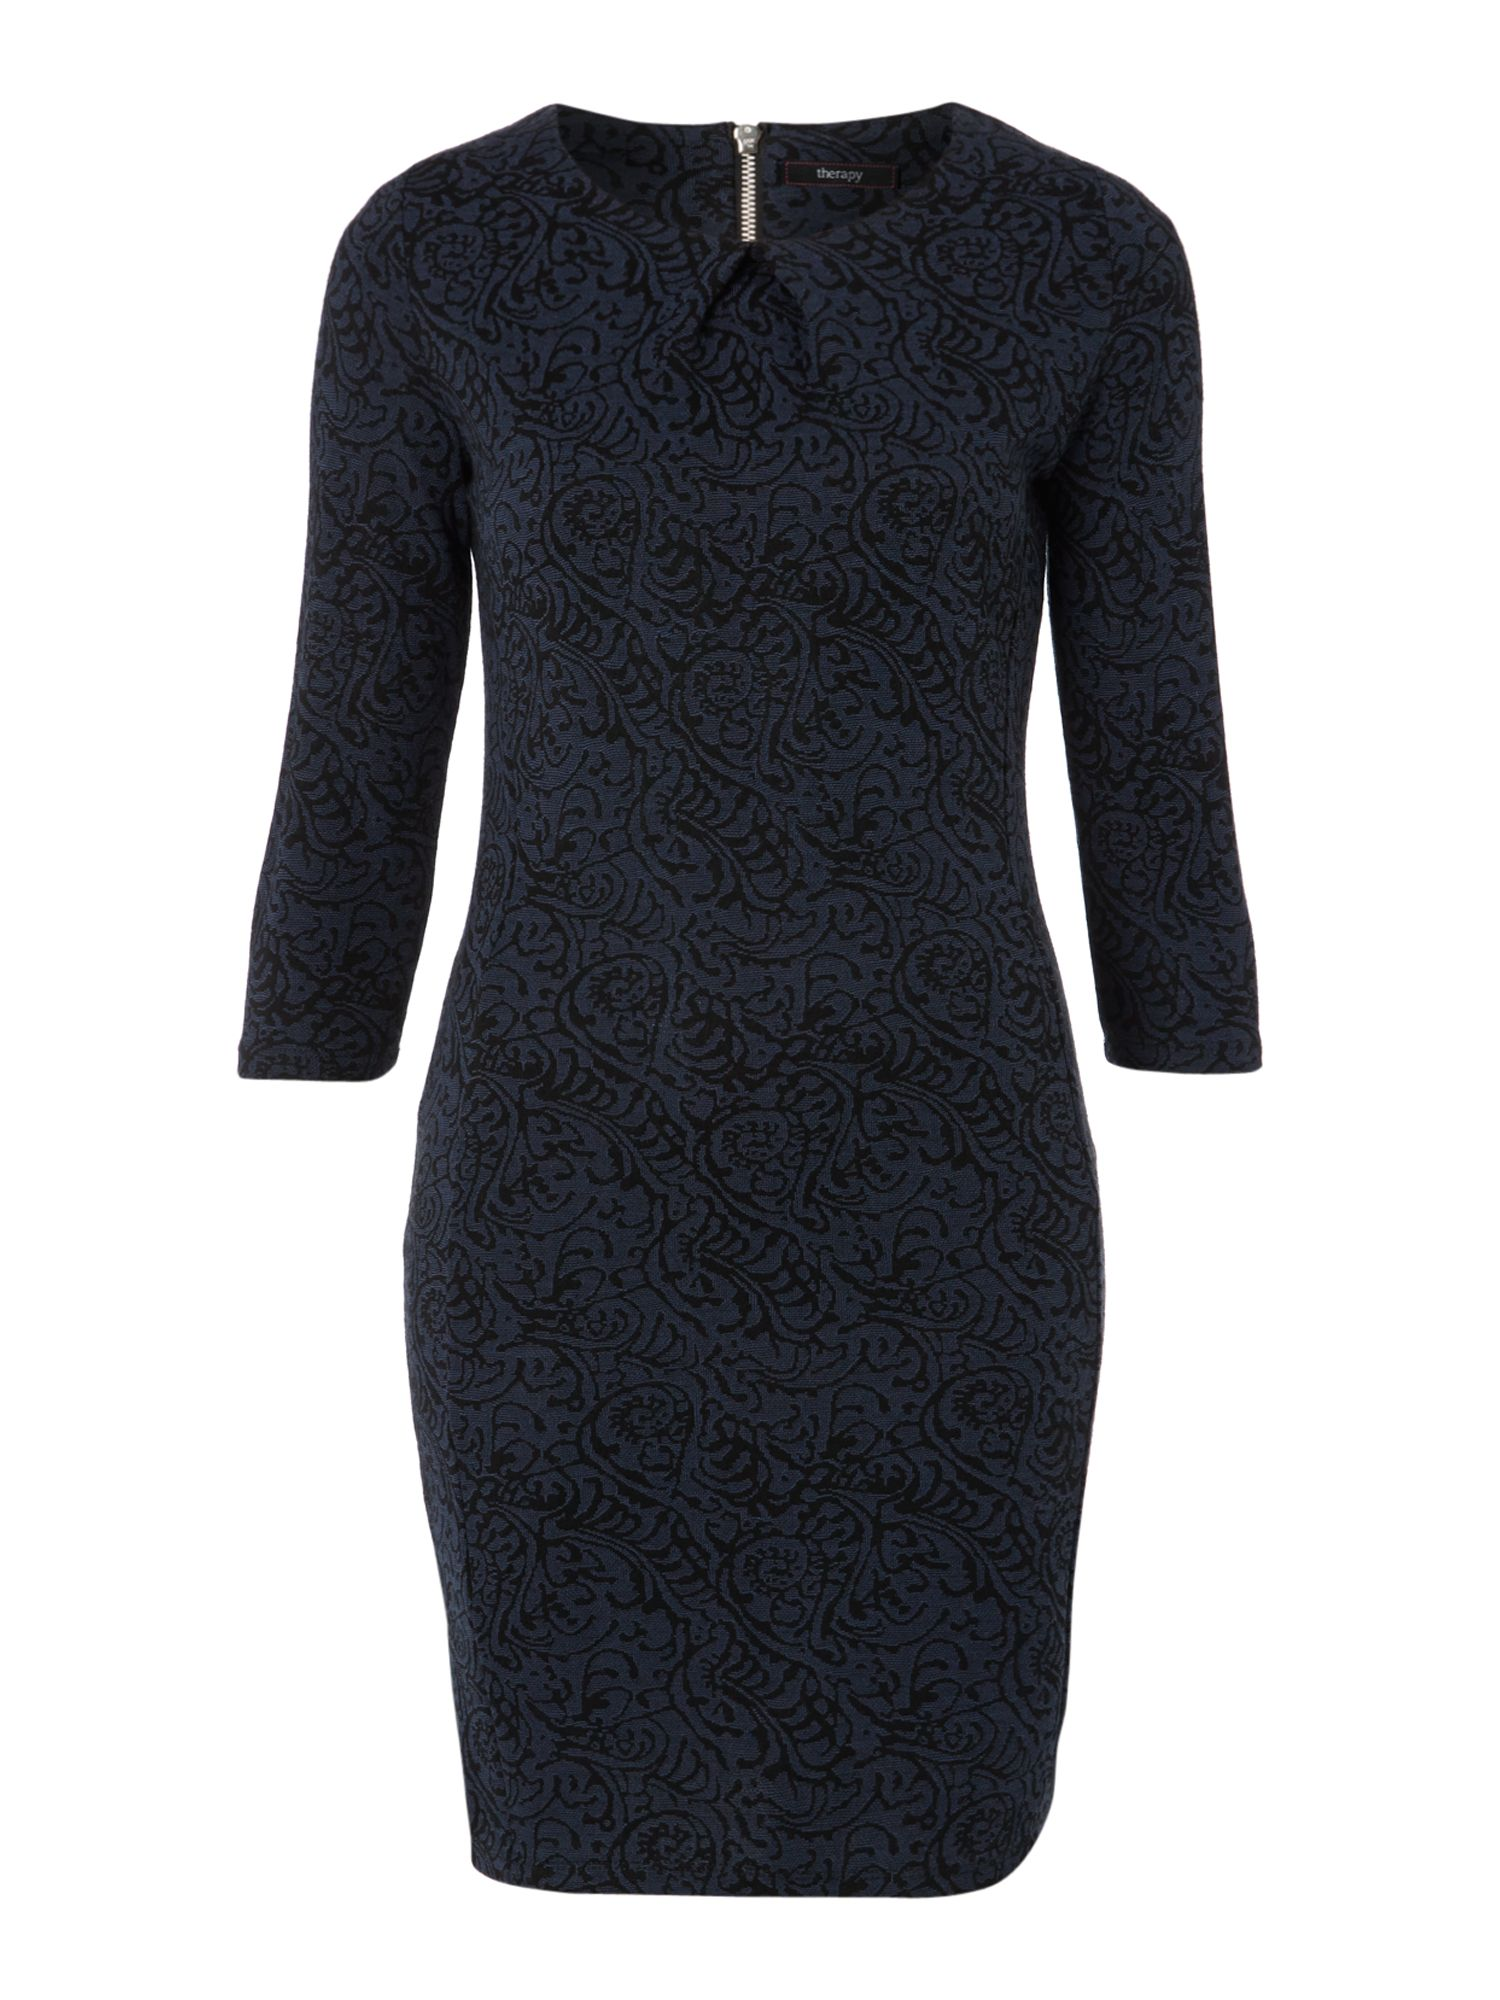 Brocade jacquard dress with sleeve